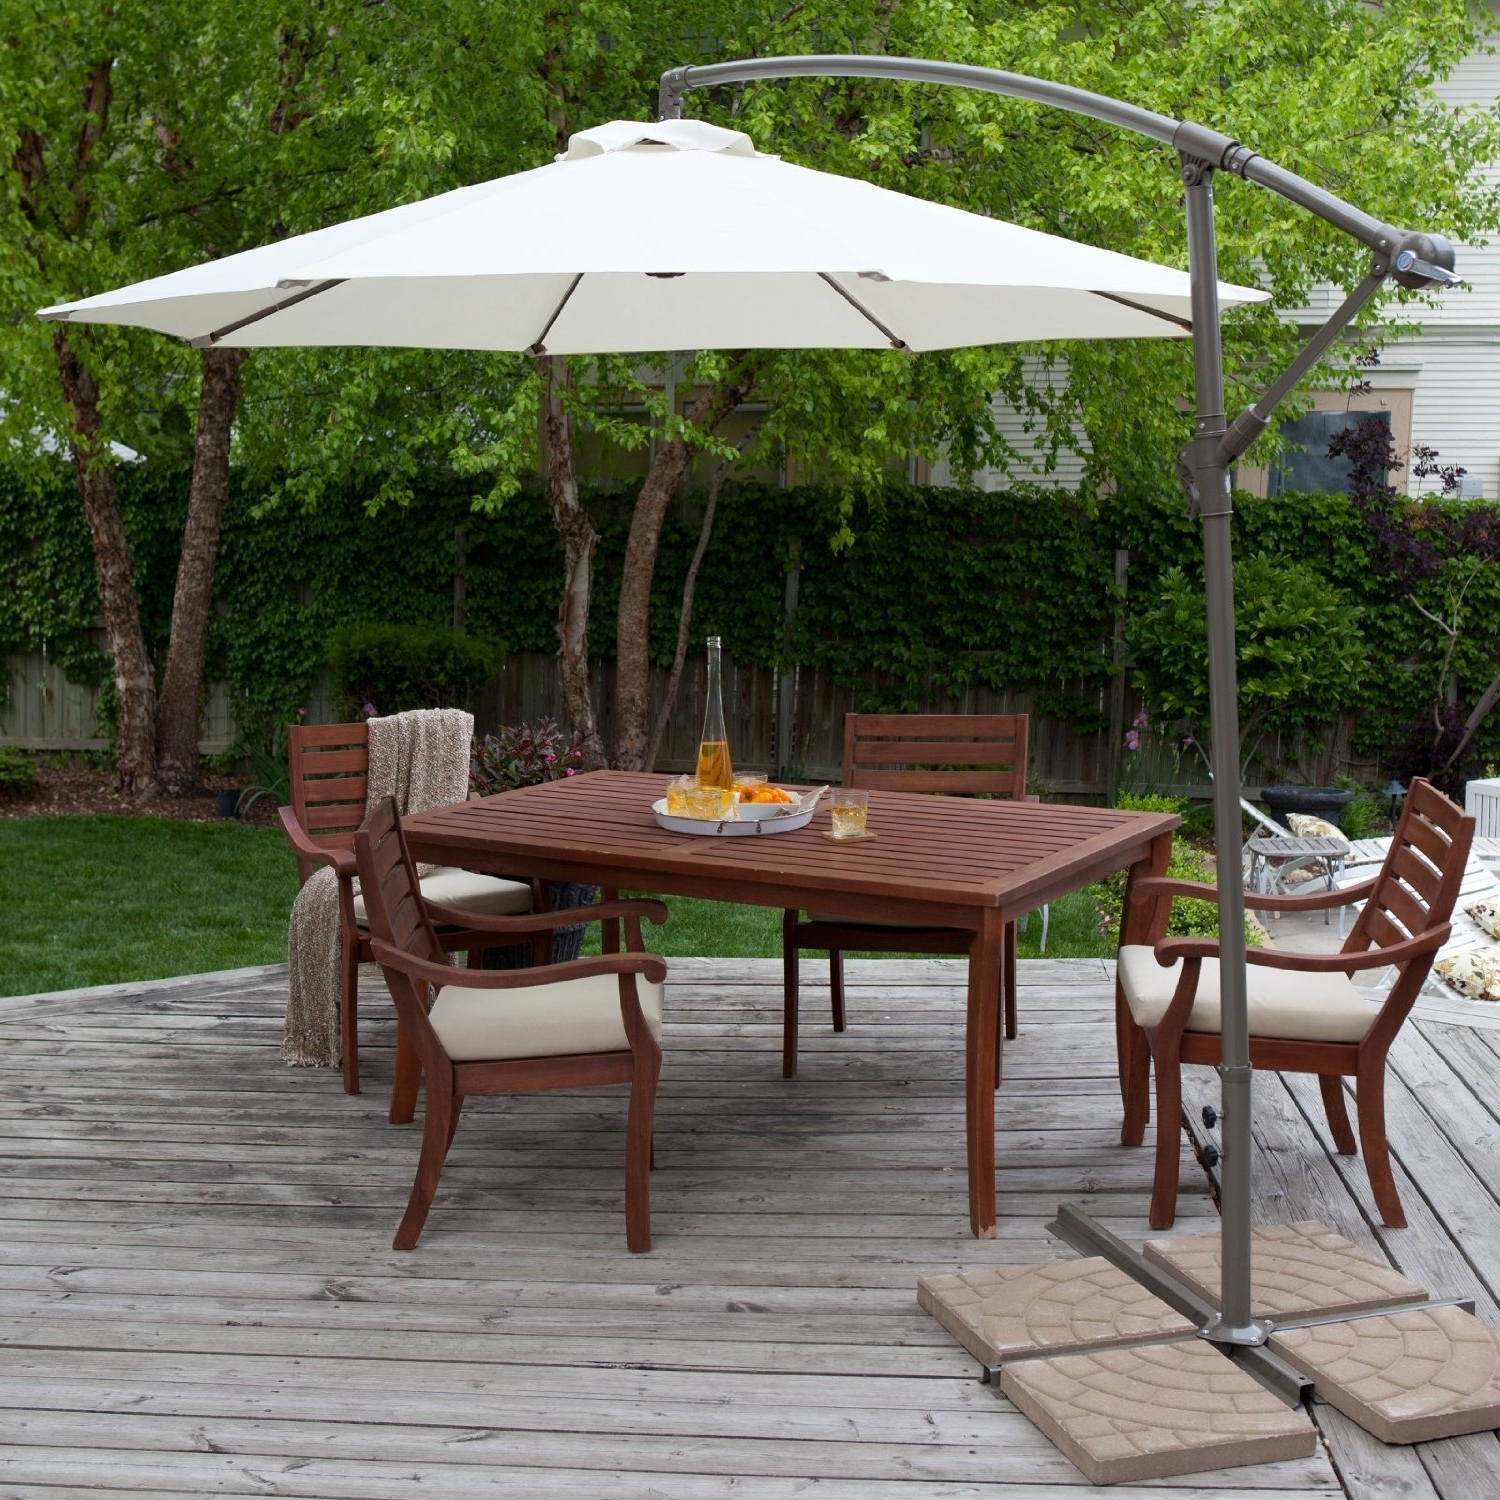 Interior : Patio Table Chairs Umbrella Set New Furniture Sets With Intended For Trendy Patio Sets With Umbrellas (View 15 of 20)